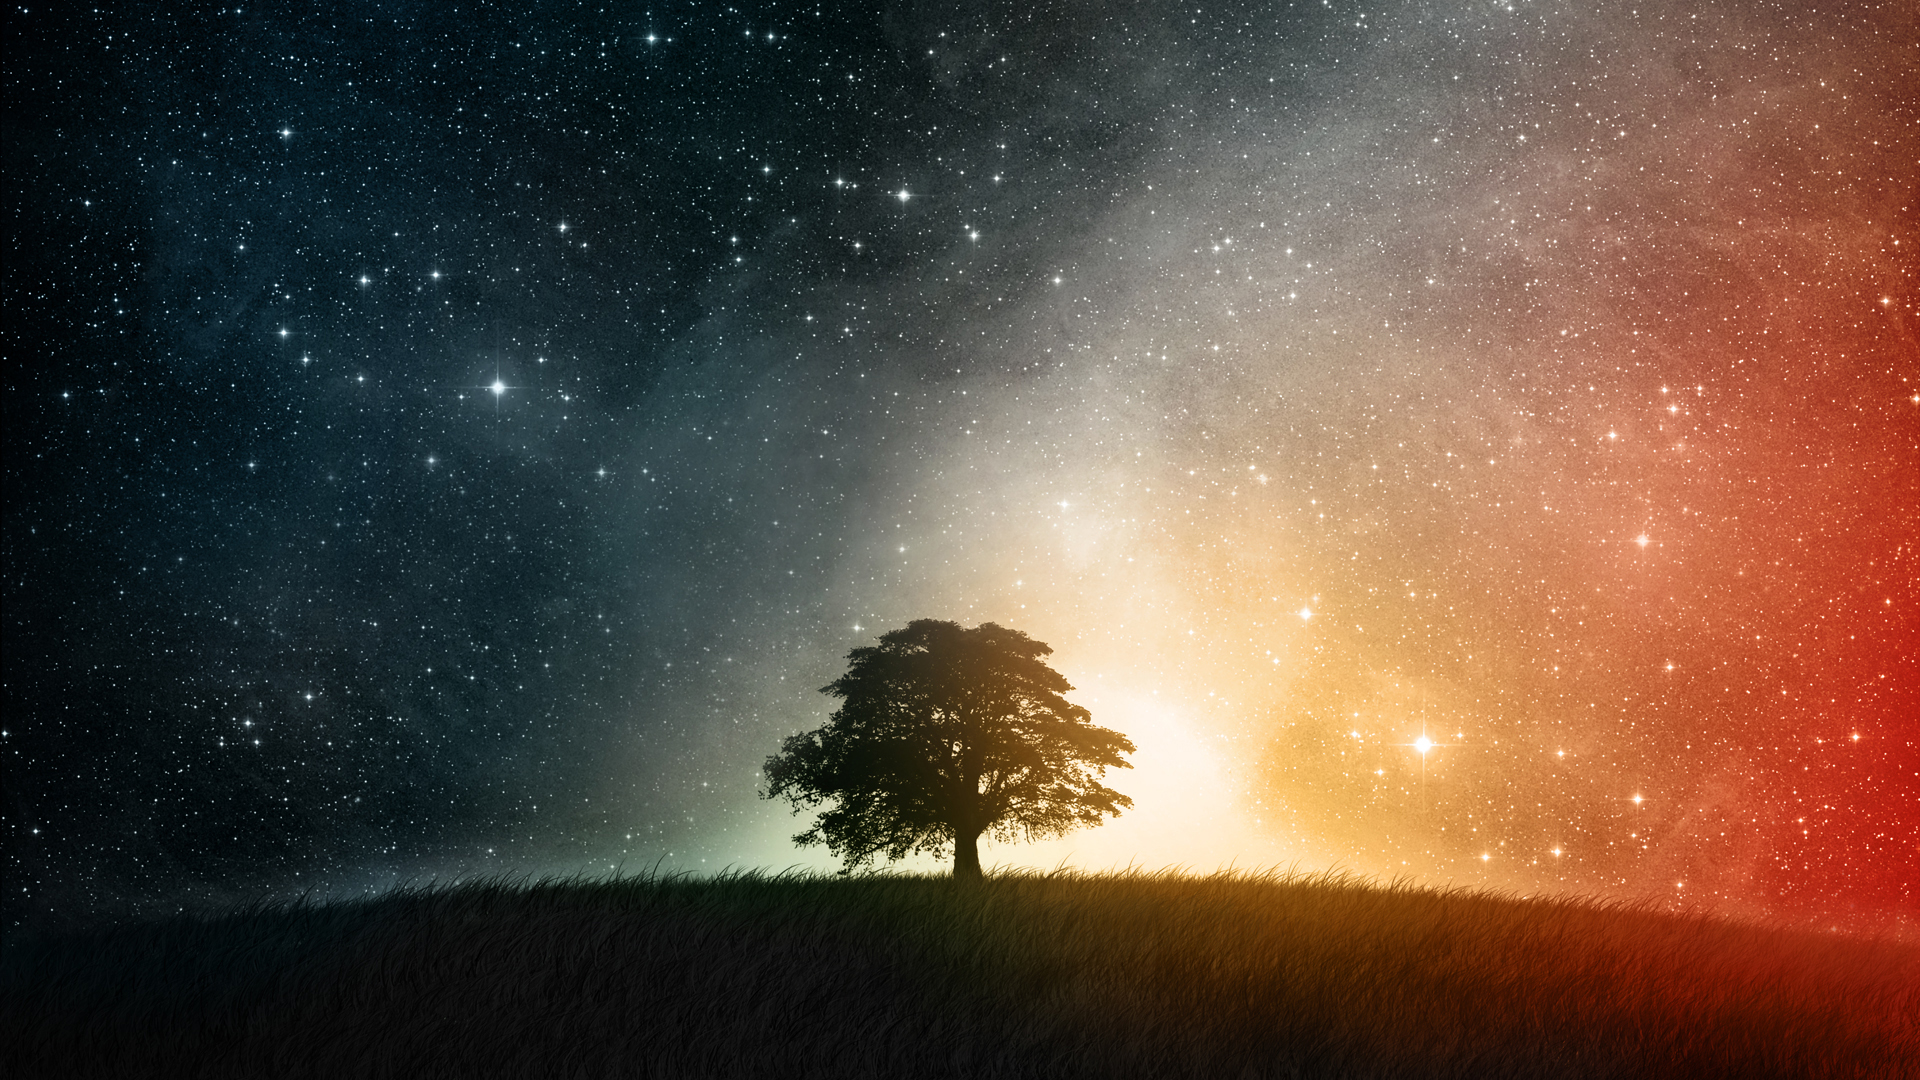 Galaxy Wallpaper HD